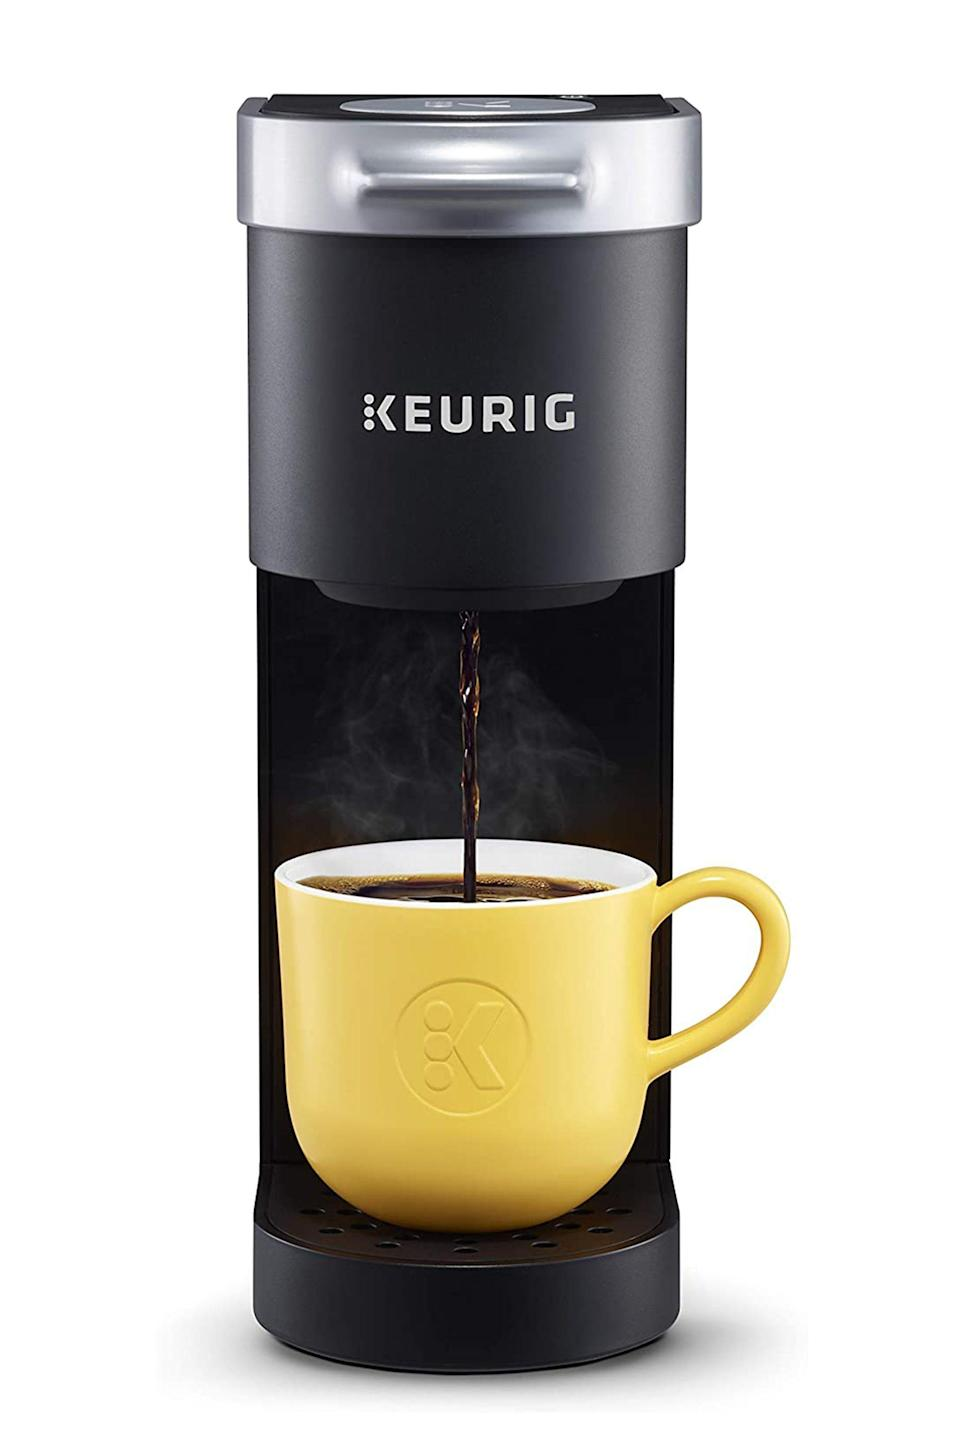 "<p><strong>Keurig</strong></p><p>amazon.com</p><p><strong>$77.90</strong></p><p><a href=""https://www.amazon.com/dp/B07GV2S1GS?tag=syn-yahoo-20&ascsubtag=%5Bartid%7C10051.g.34208929%5Bsrc%7Cyahoo-us"" rel=""nofollow noopener"" target=""_blank"" data-ylk=""slk:Shop Now"" class=""link rapid-noclick-resp"">Shop Now</a></p><p>An instant cup of coffee without them having to leave their home. </p>"